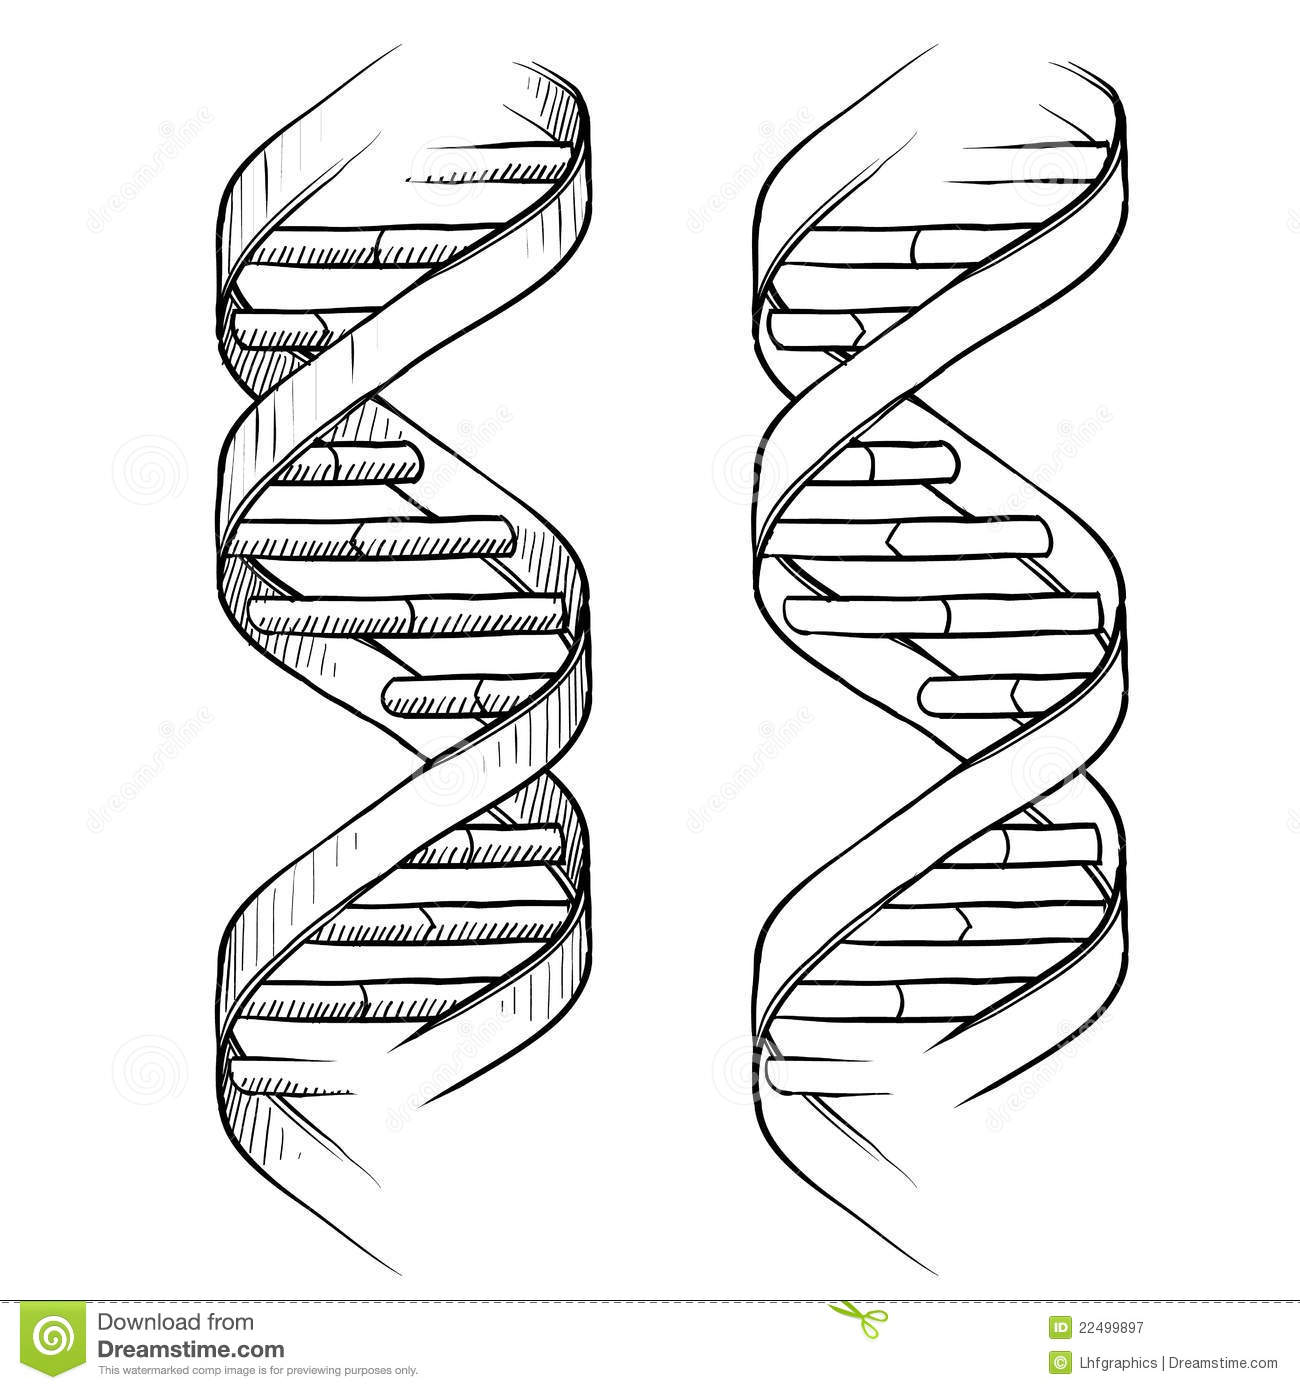 blank dna diagram 1991 jeep cherokee wiring double helix drawing stock vector illustration of